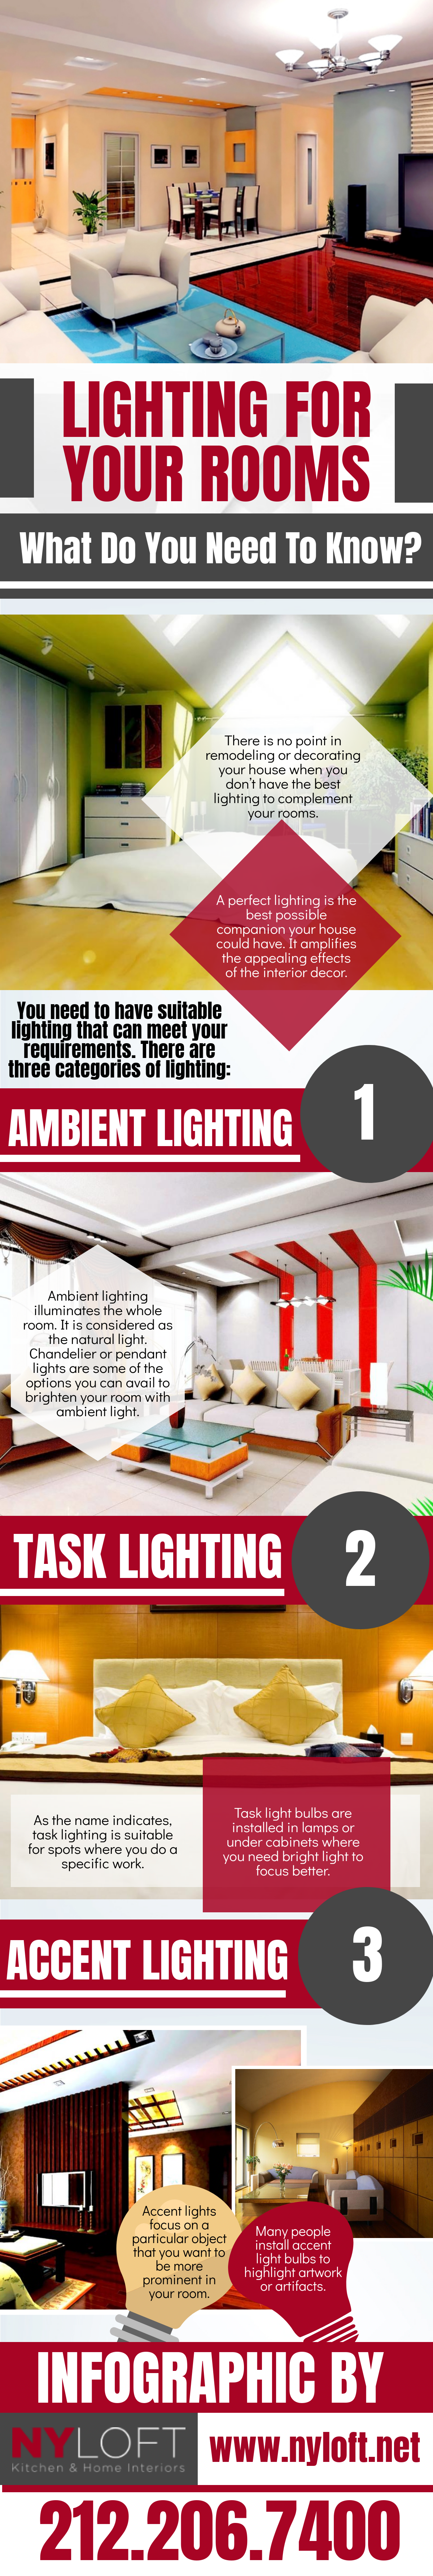 Lighting For Your Rooms - What Do You Need To Know?